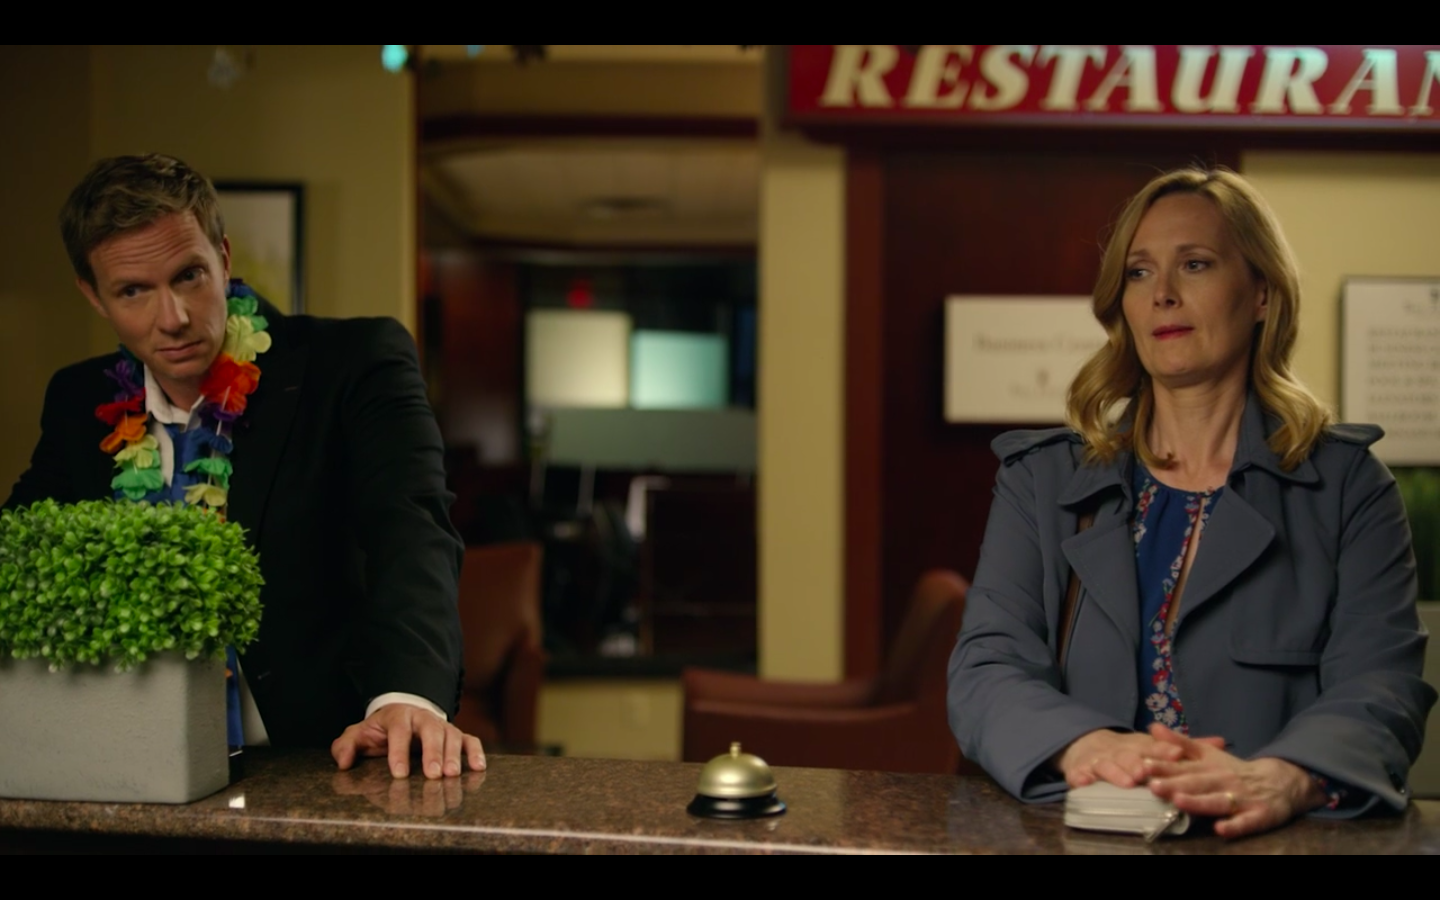 Luke, a tall blonde man wearing a suit and a plastic lei, stands next to Abby, a tall blond woman wearing a blue trench coat, they both have their hands on the hotel reception desk. A bell is between them and both are staring forward with amused, but awkward expressions on their faces.